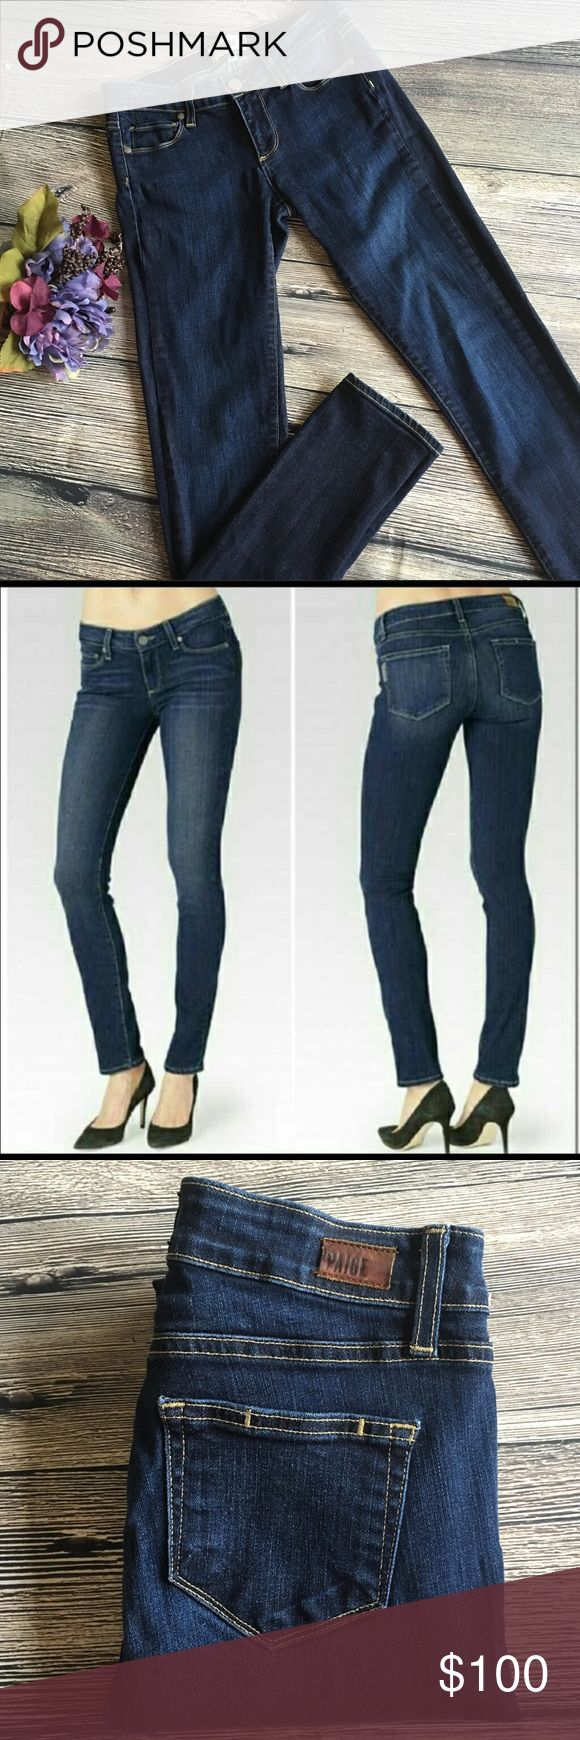 """Like New Paige Skyline Skinny (Maggie wash) With a sleek slim leg, these skyline skinny jeans are premium denim with flattering fit. Perfect to pair with flats, heels or boots, with a 28"""" inseam, like new condition. Dark Maggie wash. Size 25. Made in the USA. (D4) Paige Jeans Jeans Skinny"""